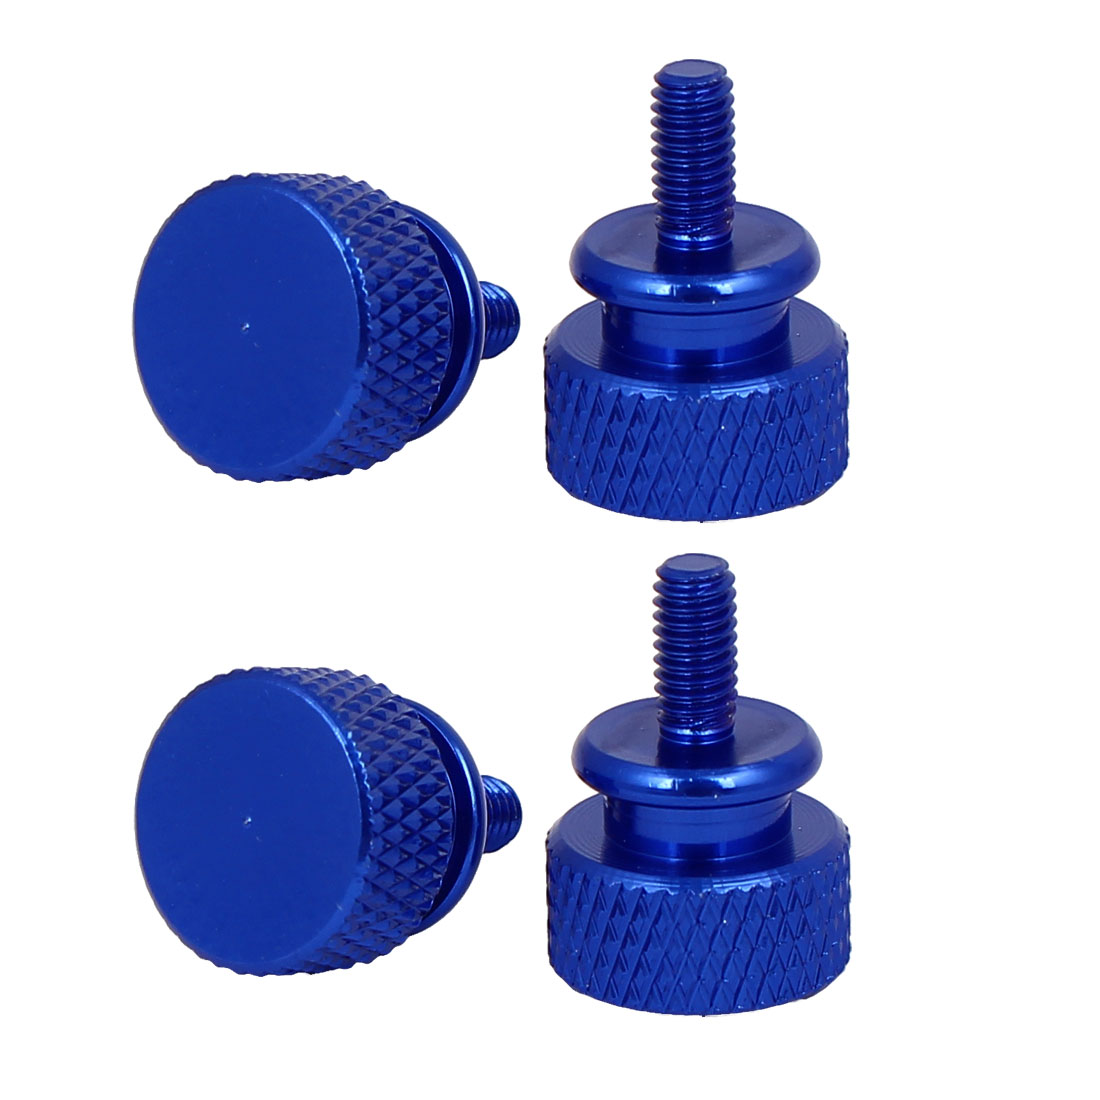 Computer PC Case Fully Threaded Knurled Thumb Screws Royal Blue M3.5x7mm 4pcs